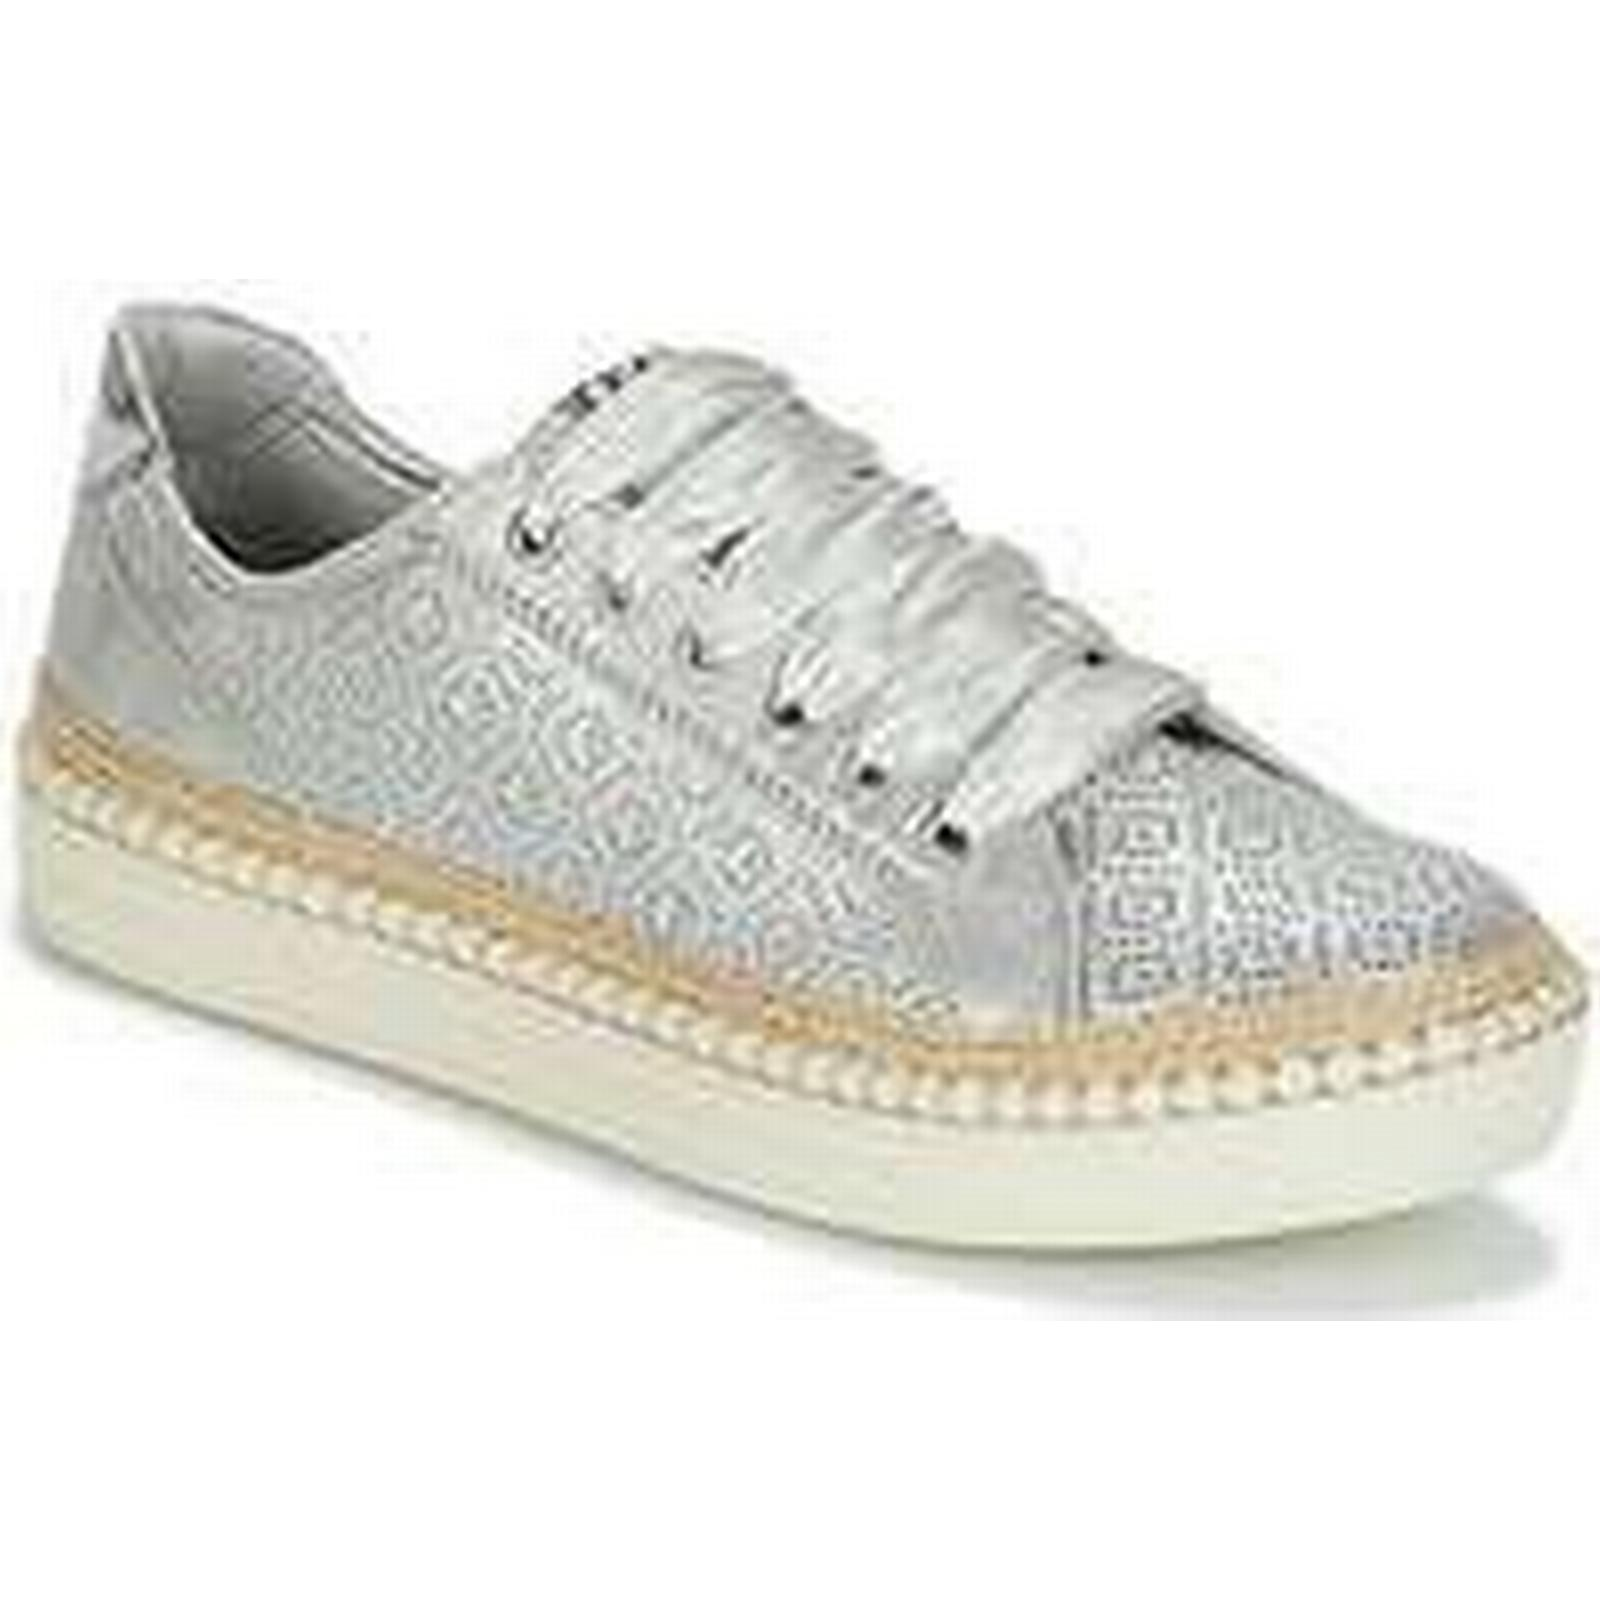 Spartoo.co.uk Marco (Trainers) Tozzi BAPER women's Shoes (Trainers) Marco in Silver 168d46